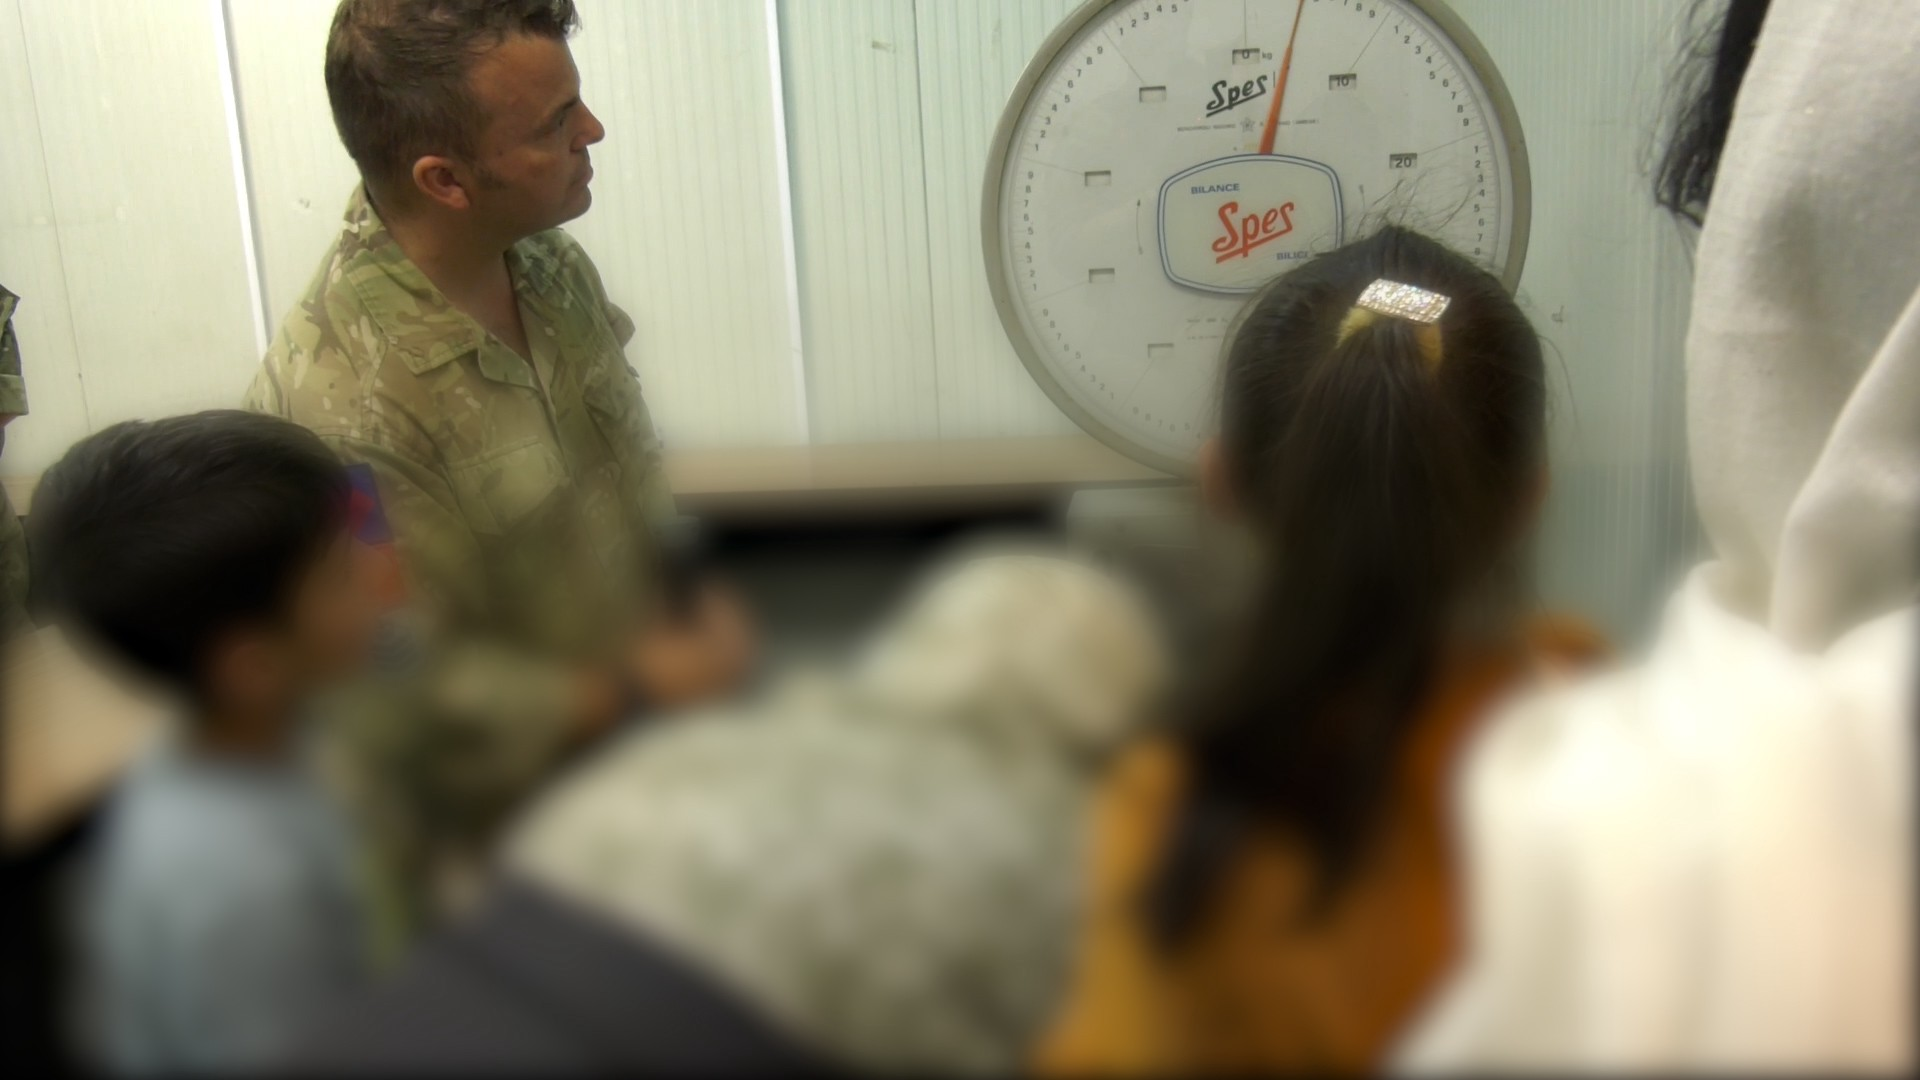 A man in military uniform with a group of people with their backs to the camera looking at a weighing scale.